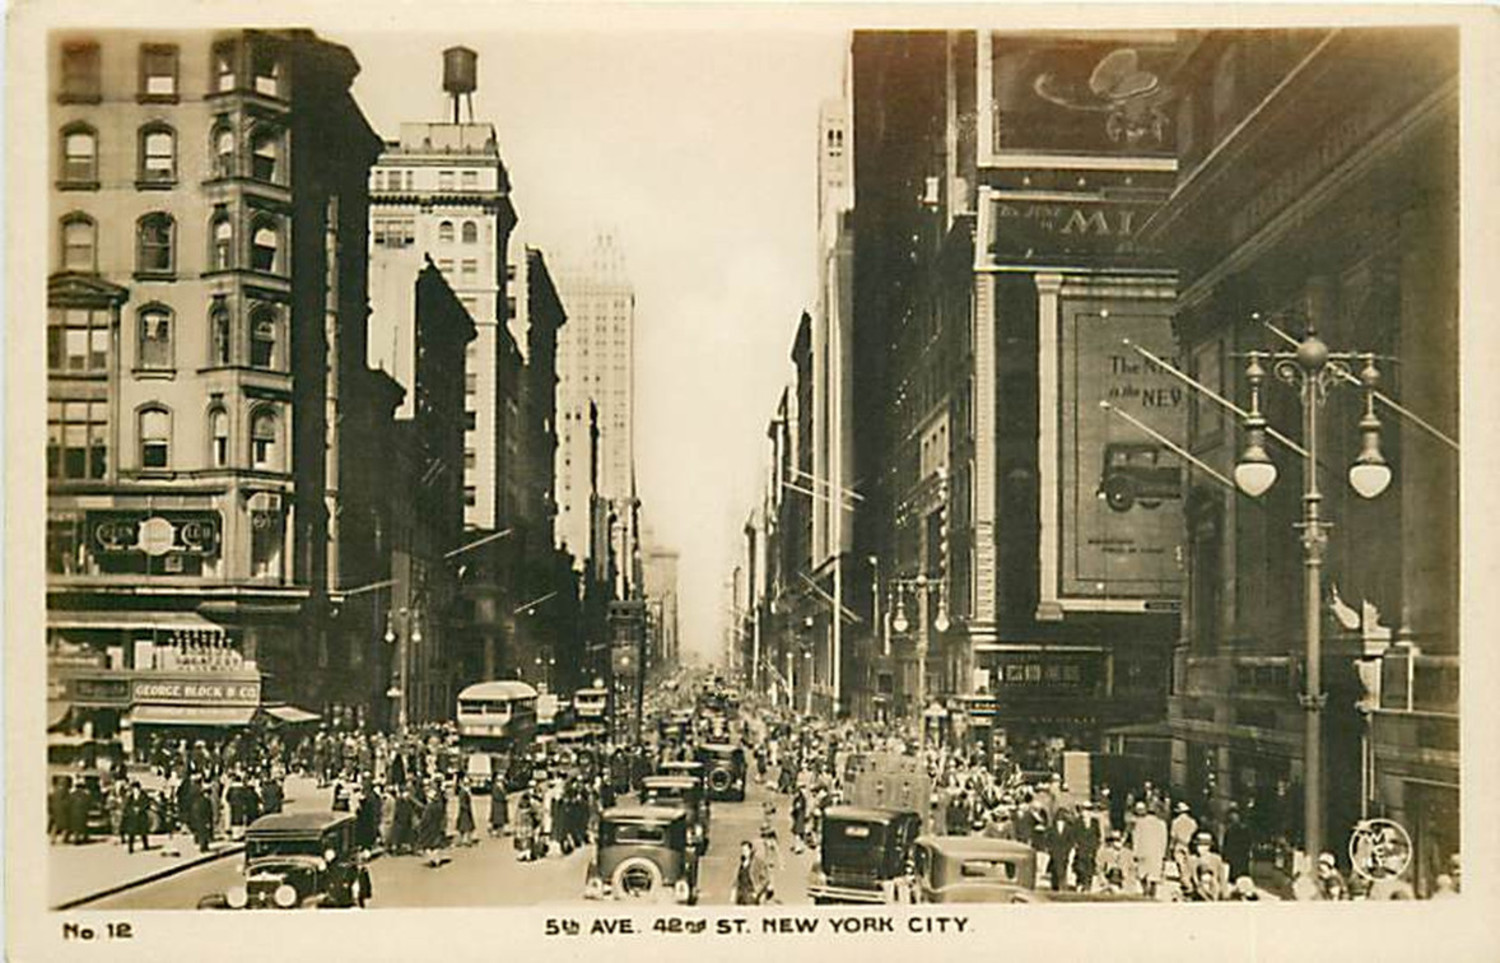 From about 1927 this view of Fifth Avenue looking north from 41st Street shows a bustling metropolis. A traffic signal tower is set up at the intersection of 42nd and Fifth. On the west side (left) is the former Hotel Bristol, converted to the Bristol Building in 1903. It was demolished in 1929 to make way for the art deco skyscraper, 500 Fifth Avenue.